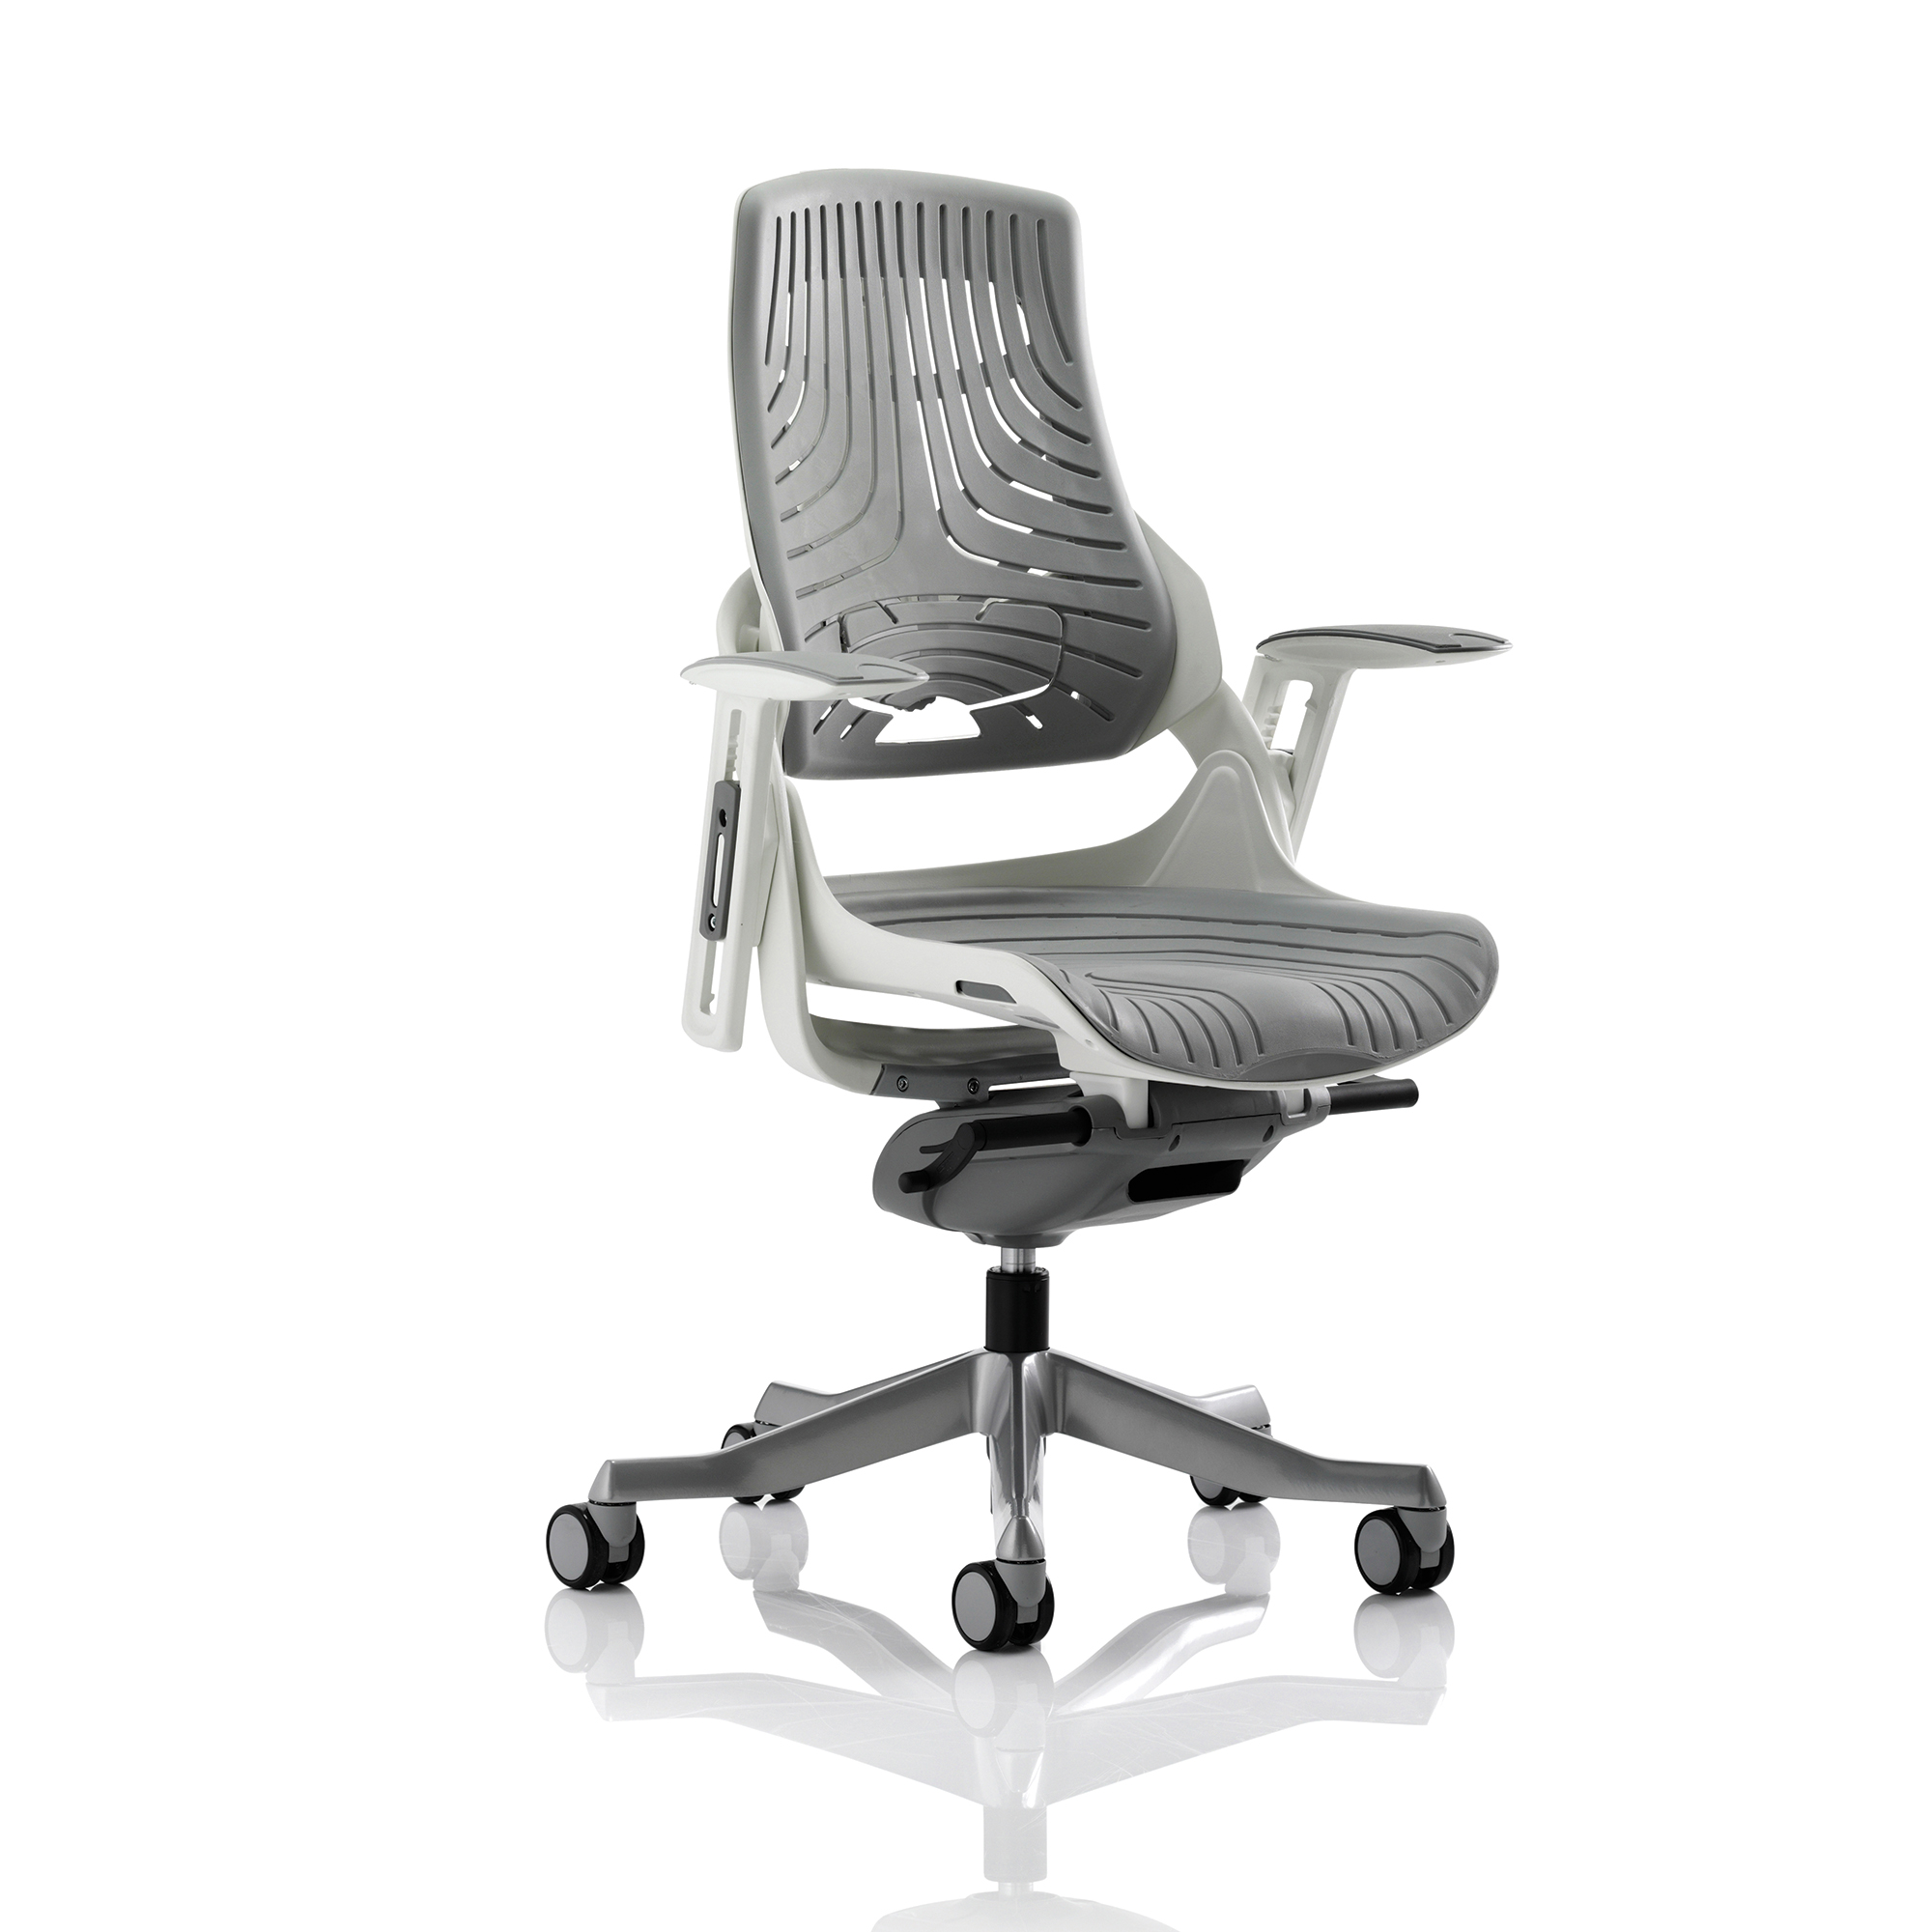 Executive seating Adroit Zure Executive Chair With Arms Elastomer Gel Grey Ref EX000112